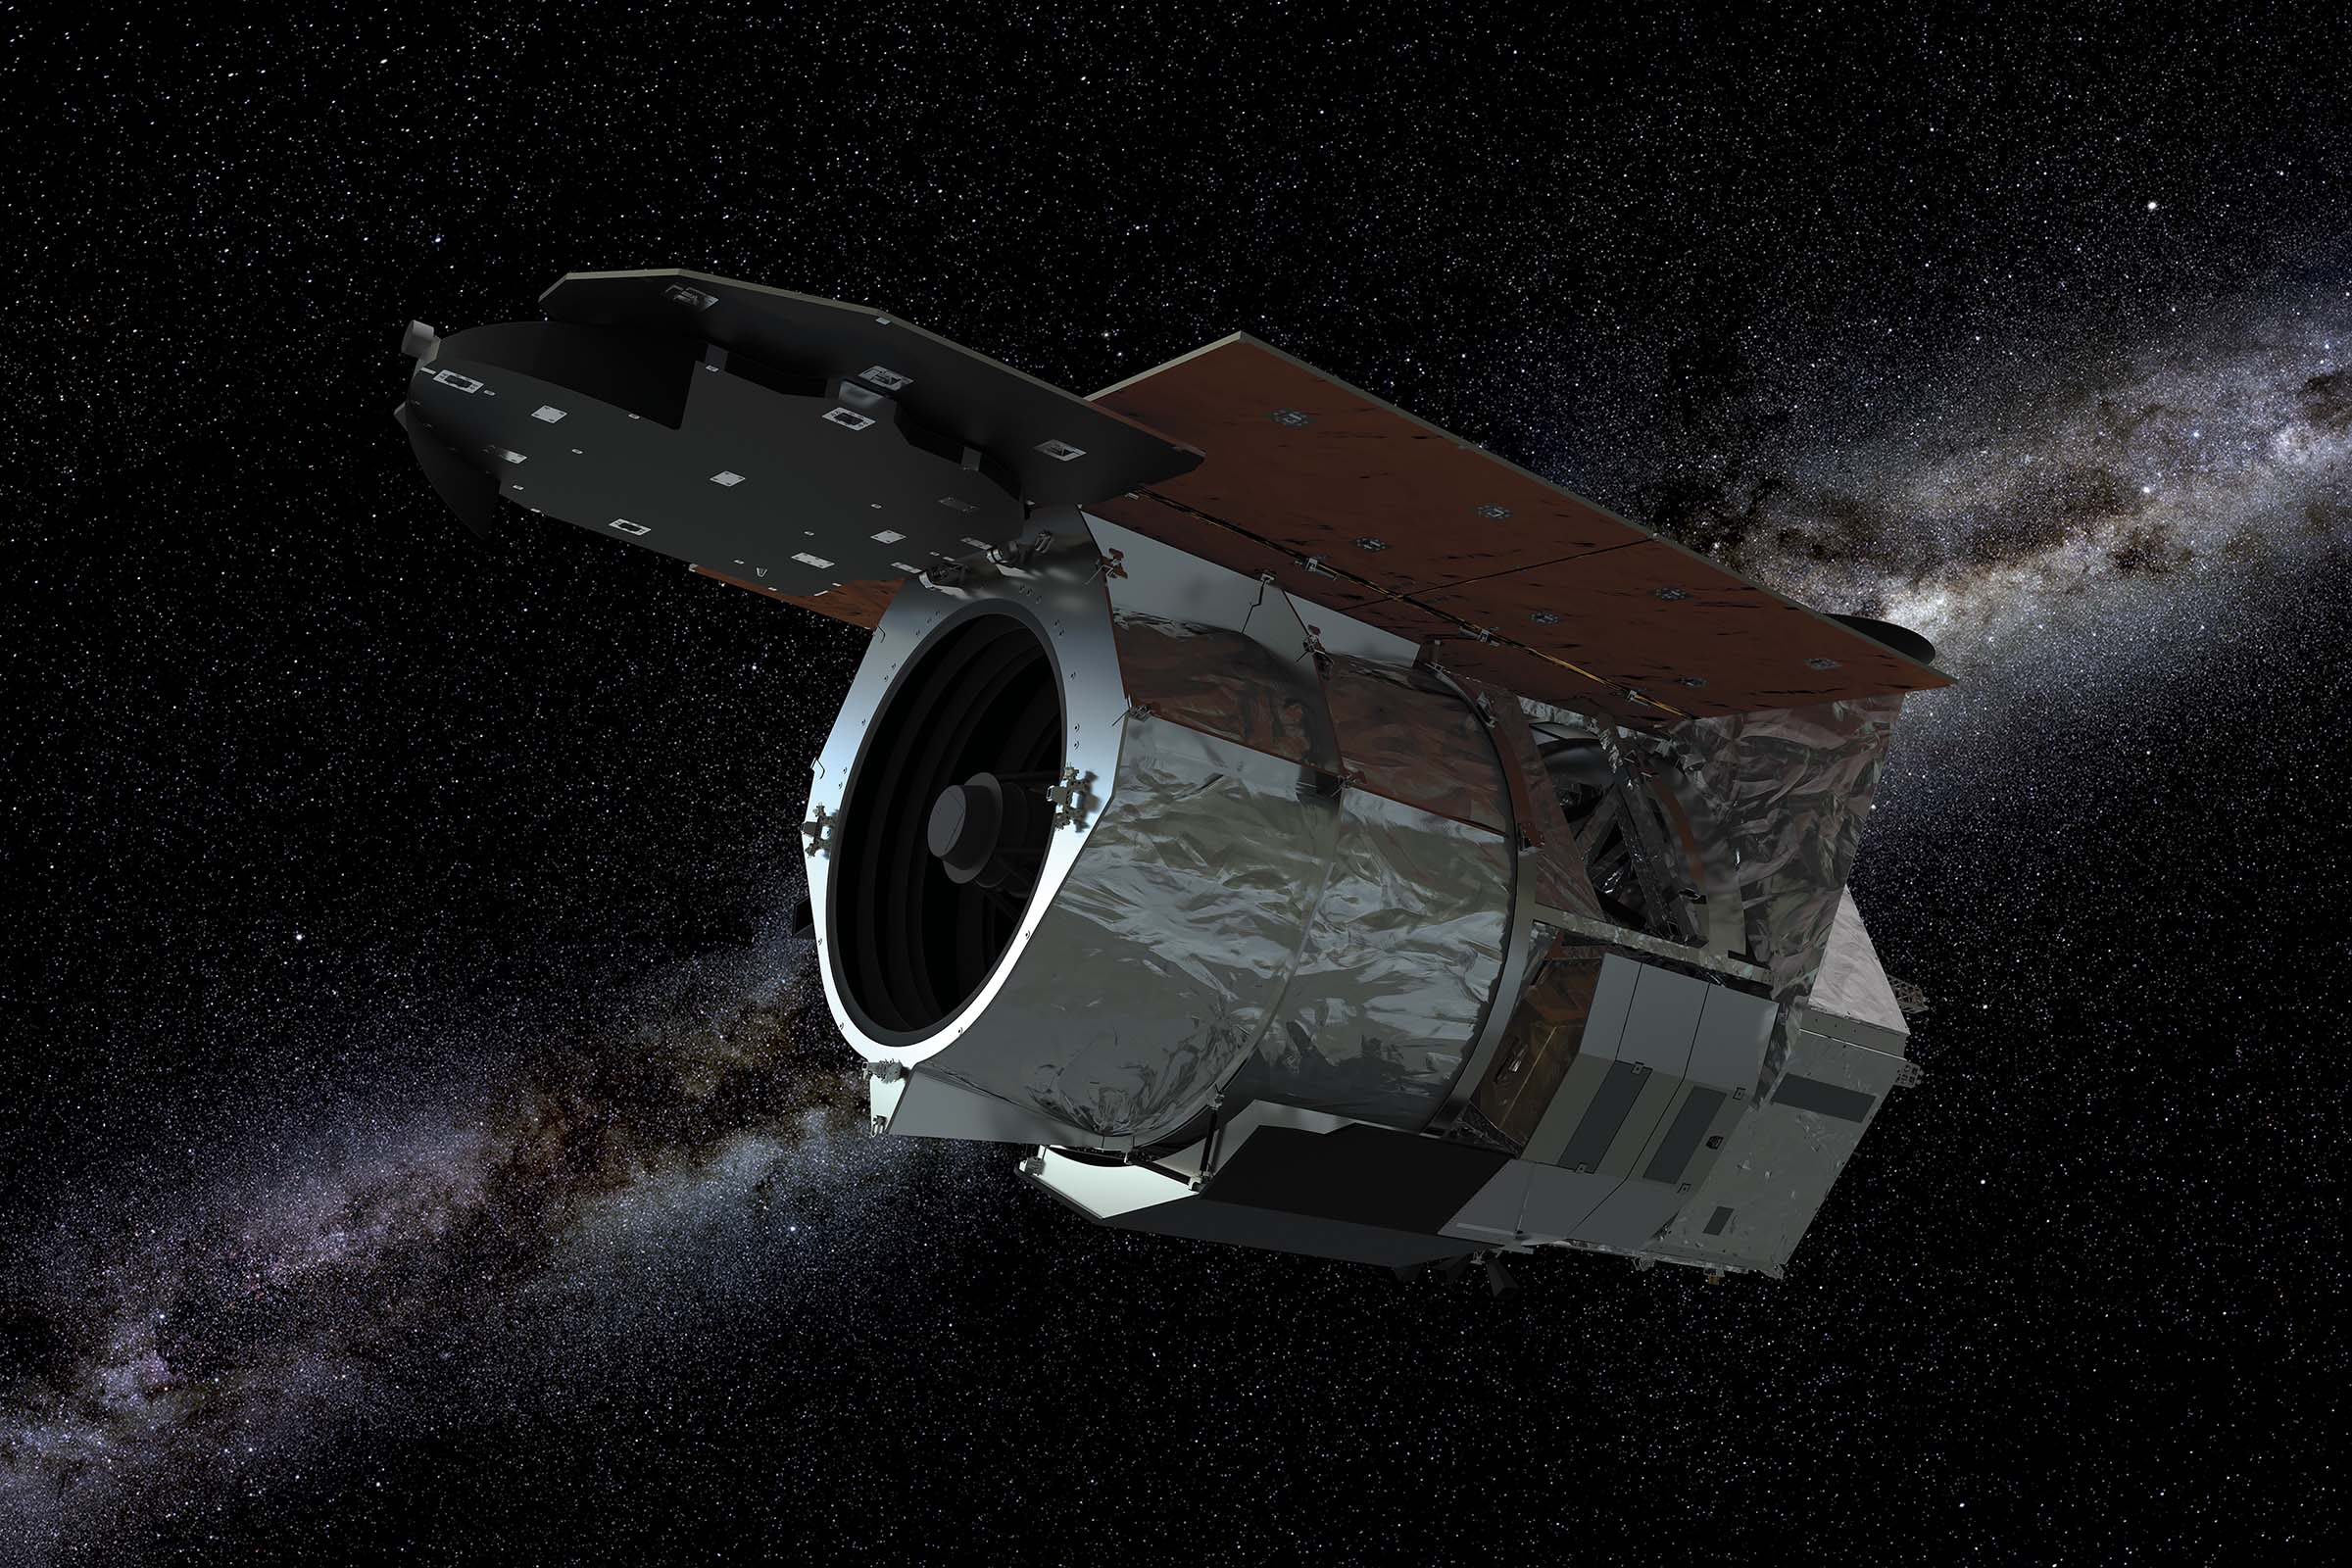 The Nancy Grace Roman Space Telescope floating in space